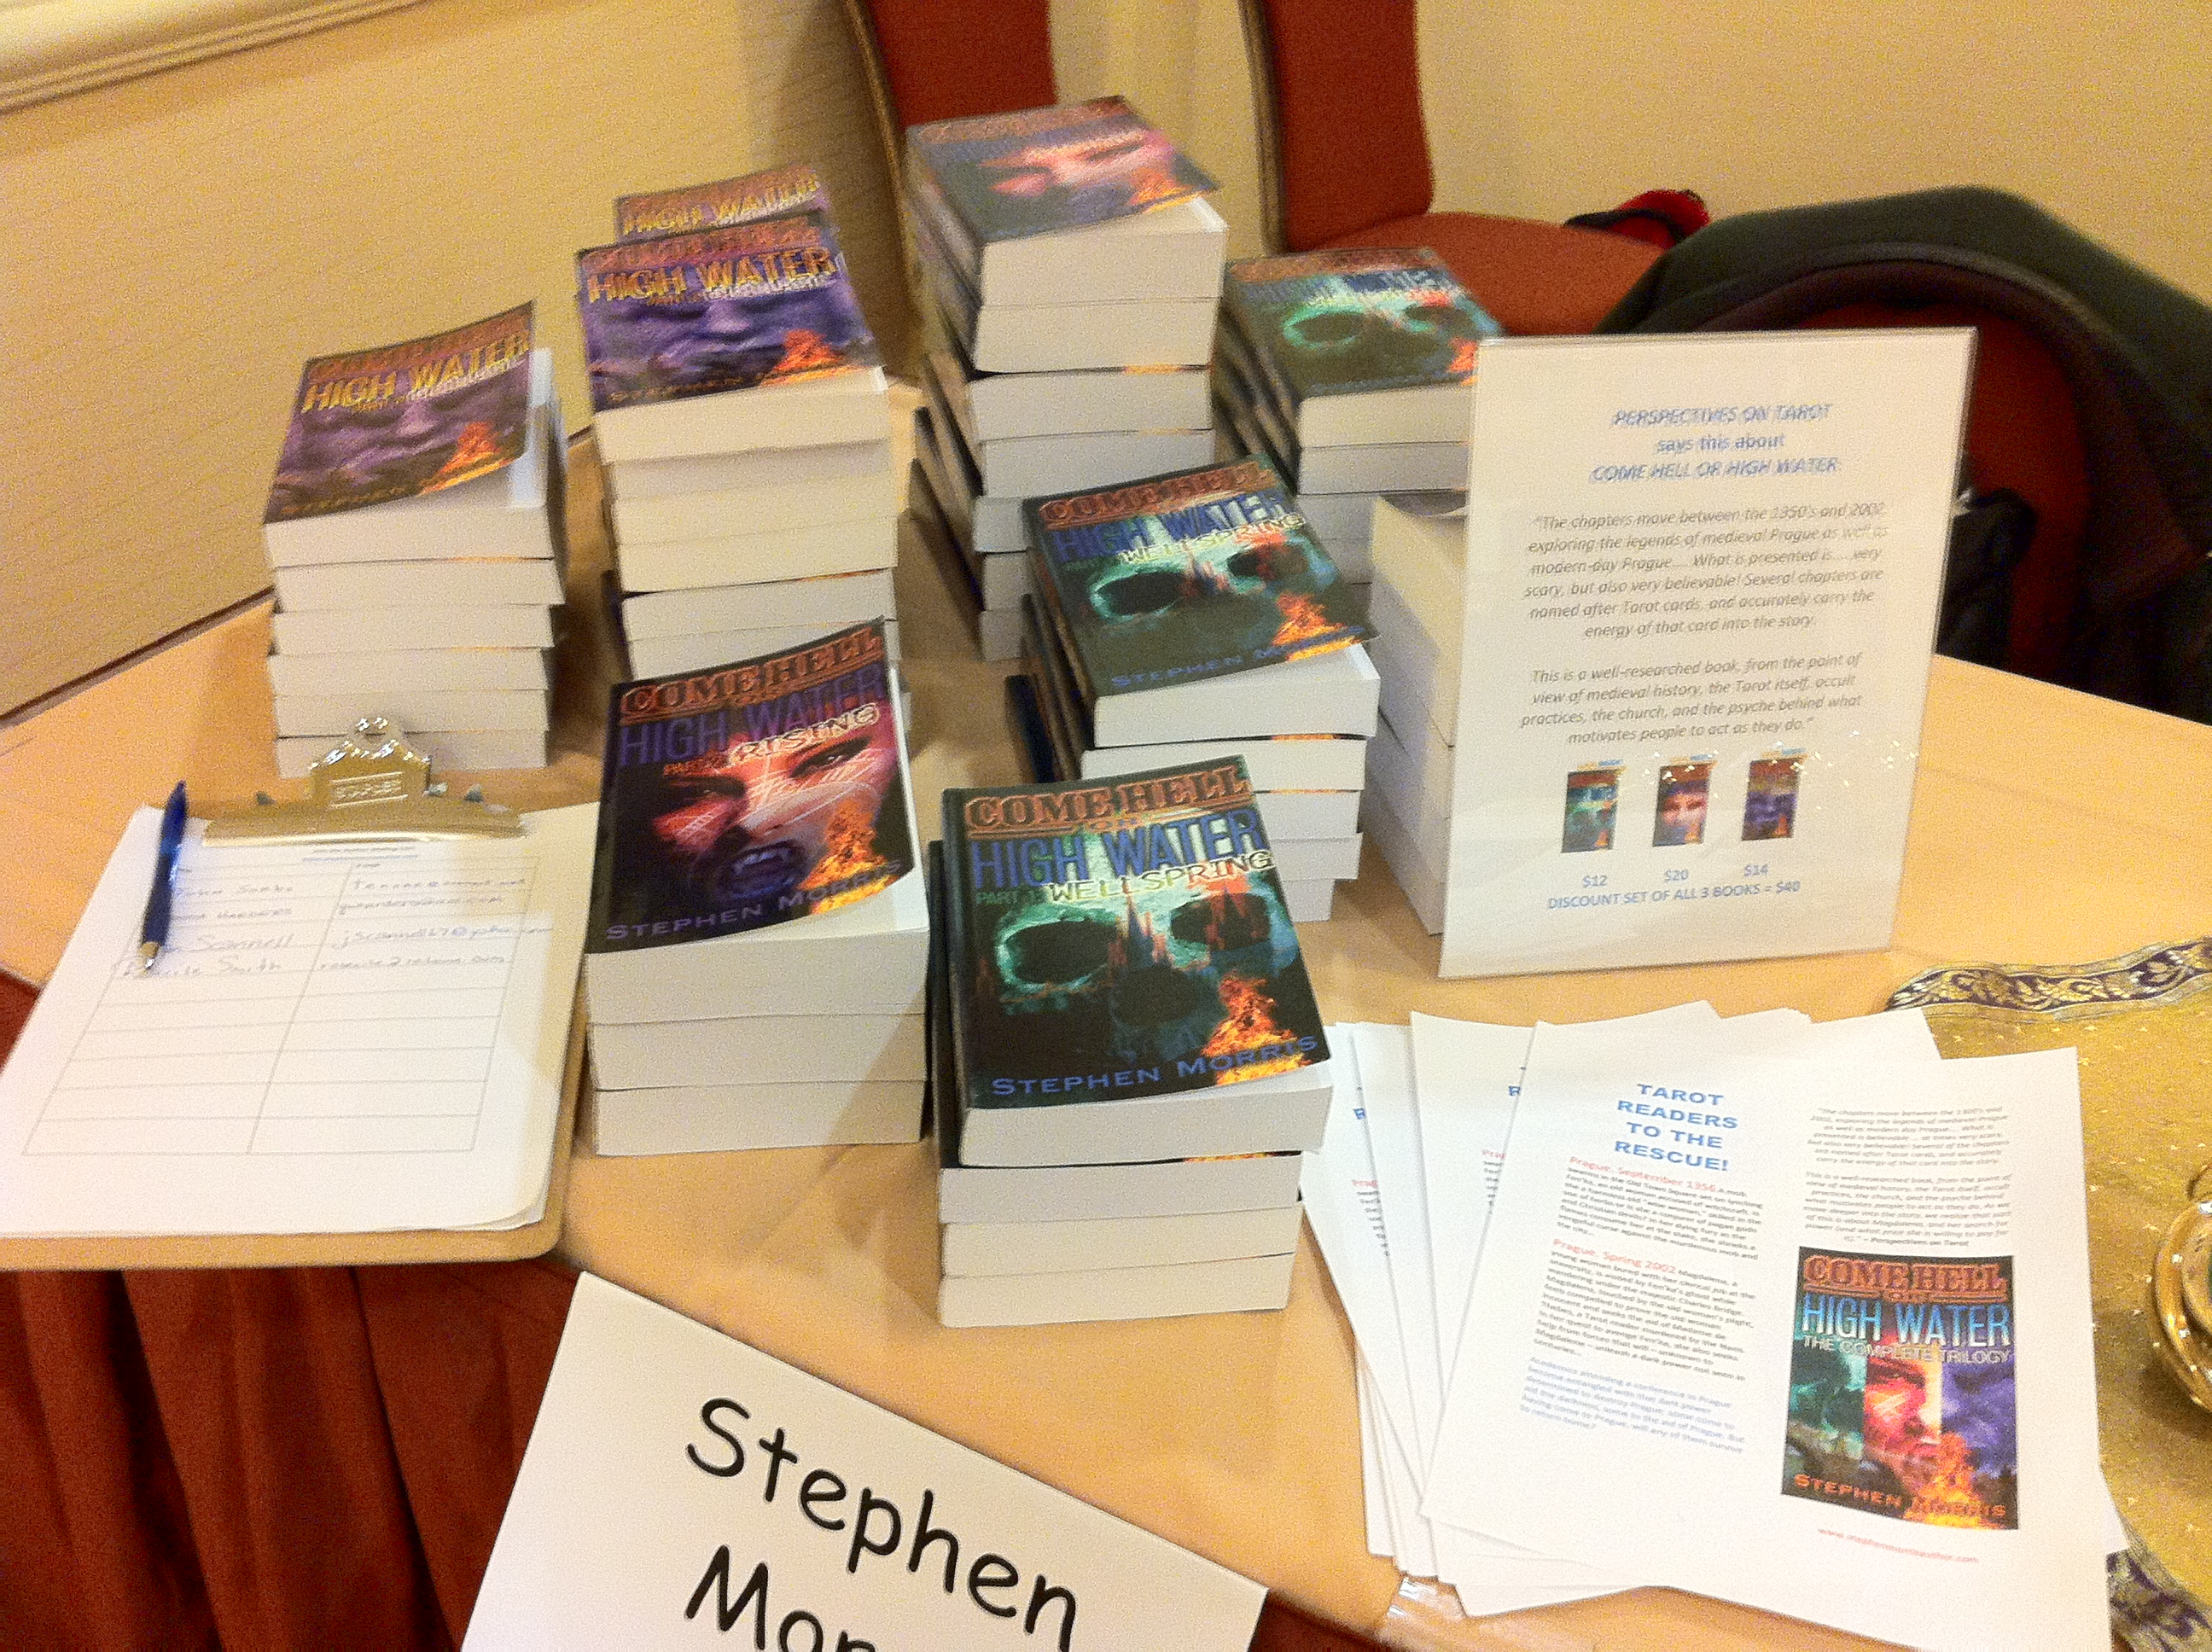 My display at the Readers Studio 2014 conference.